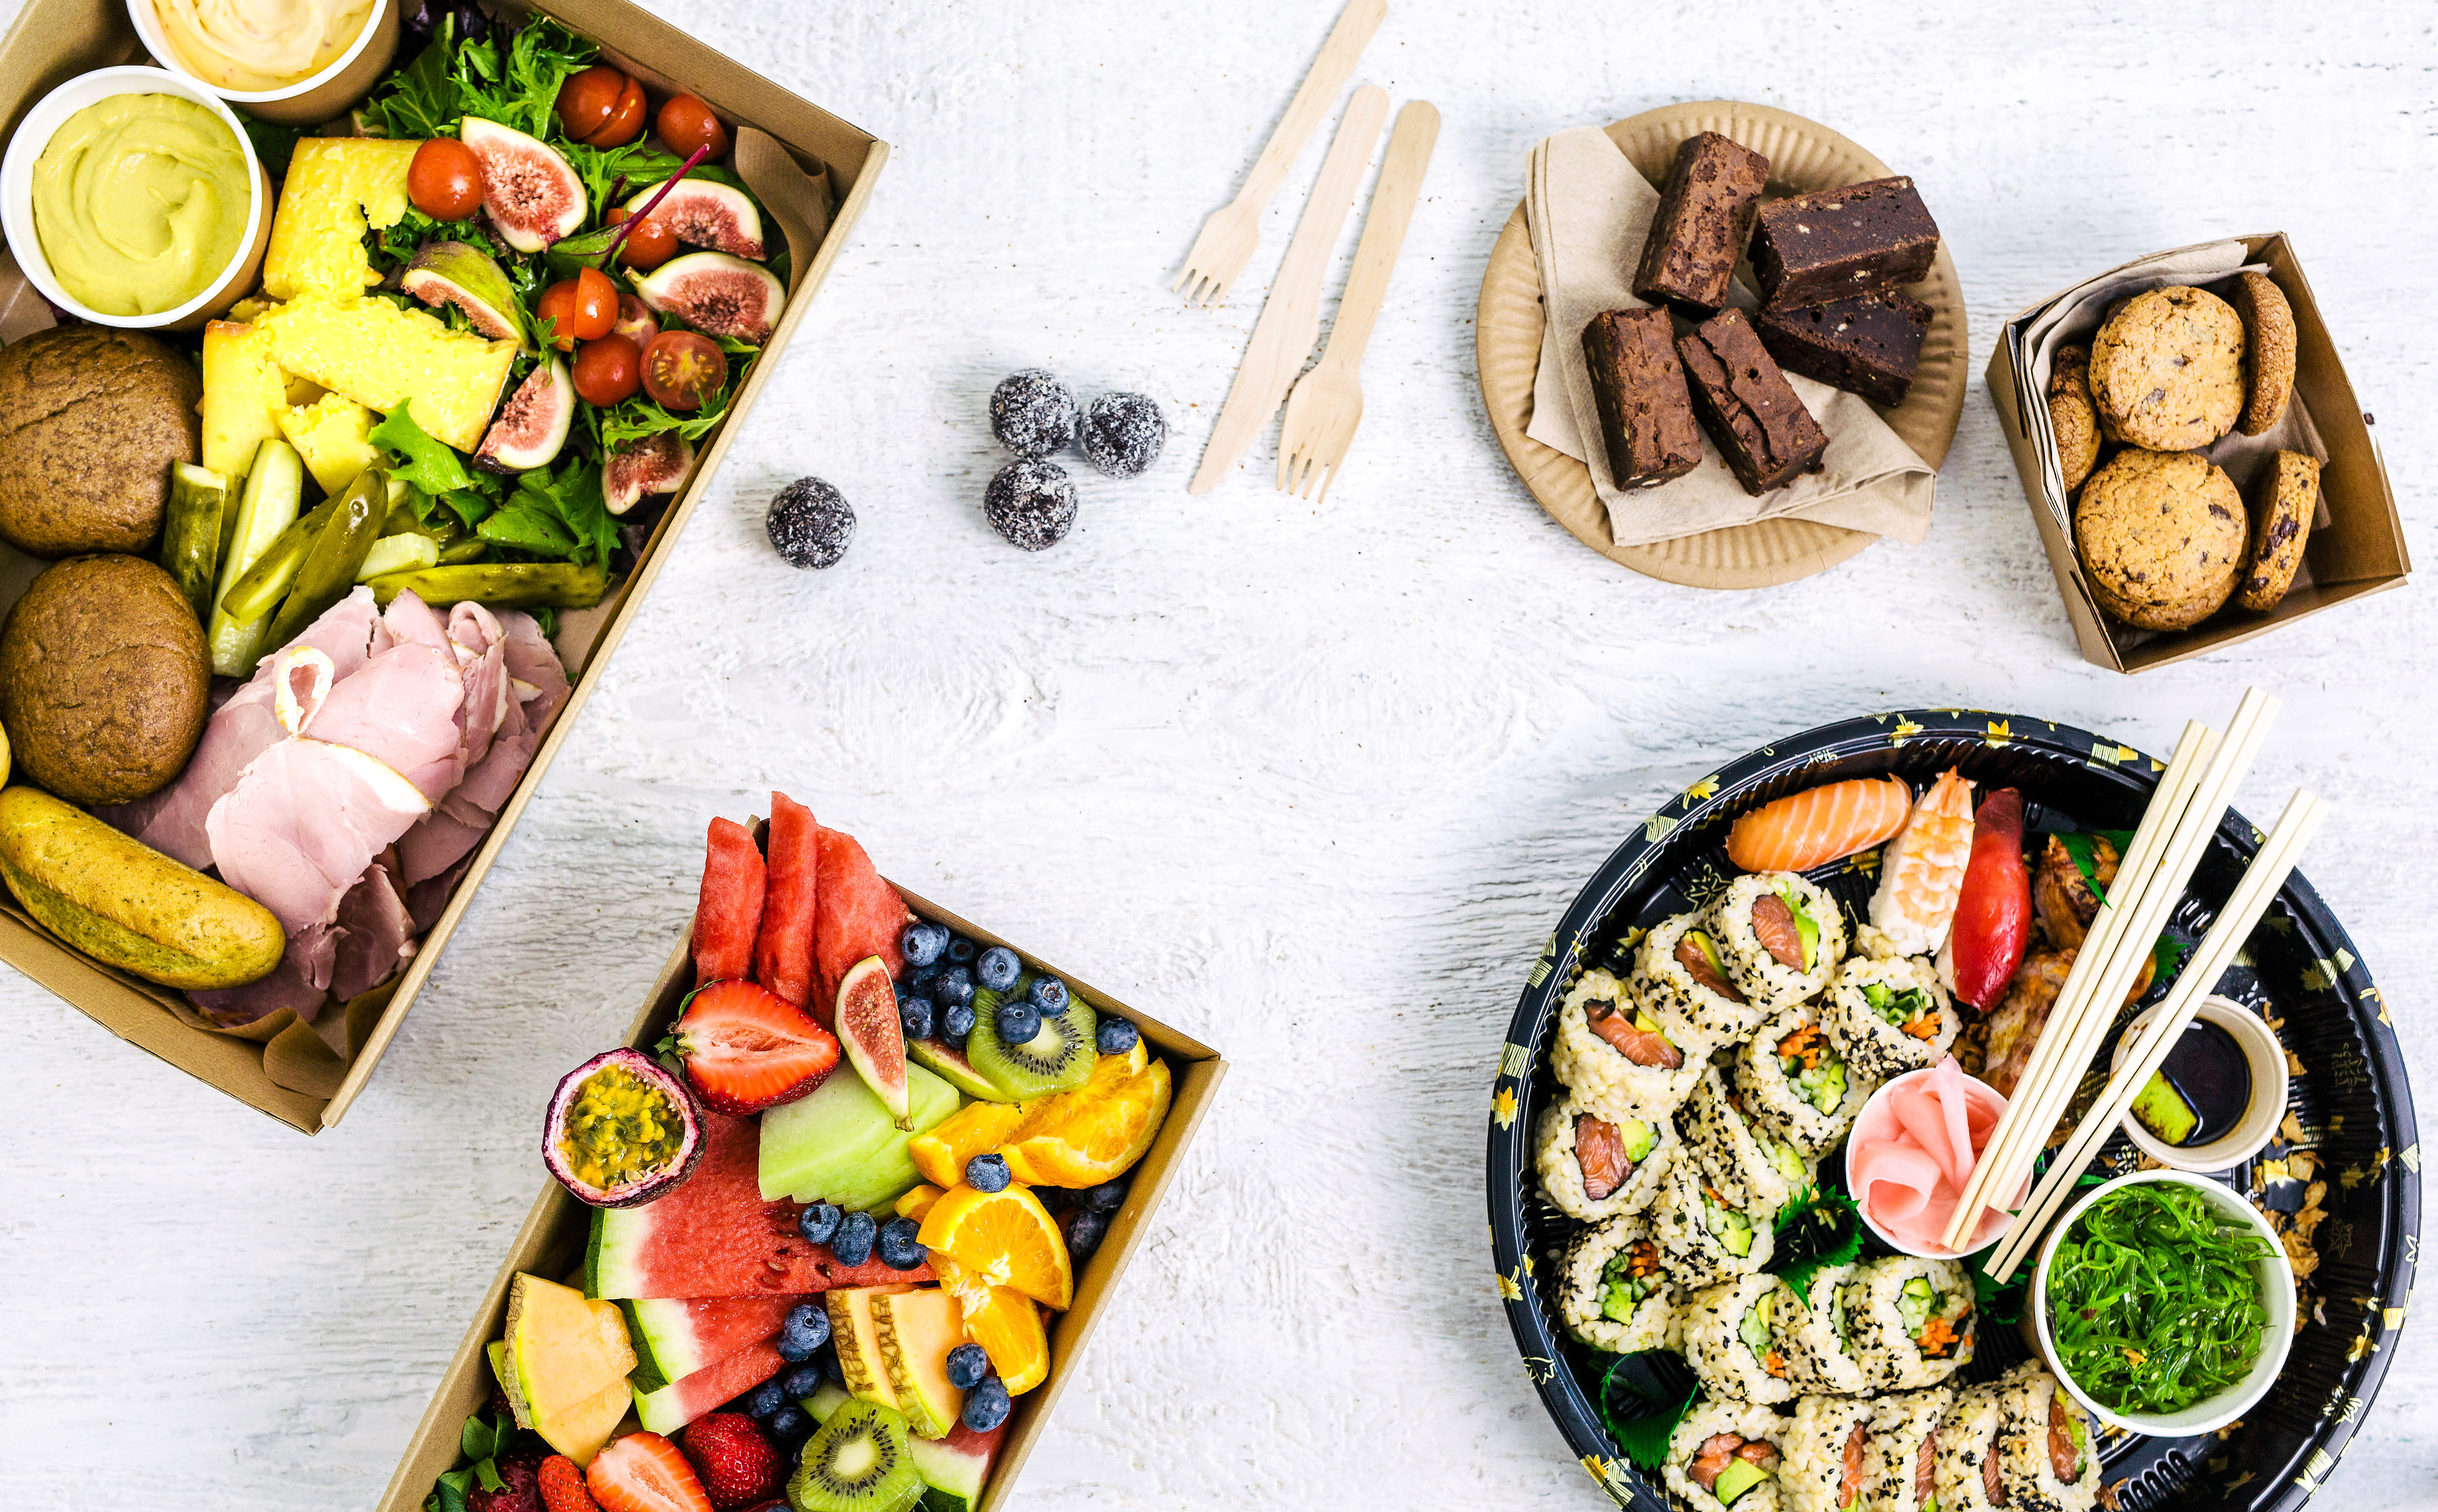 Crafted Catering